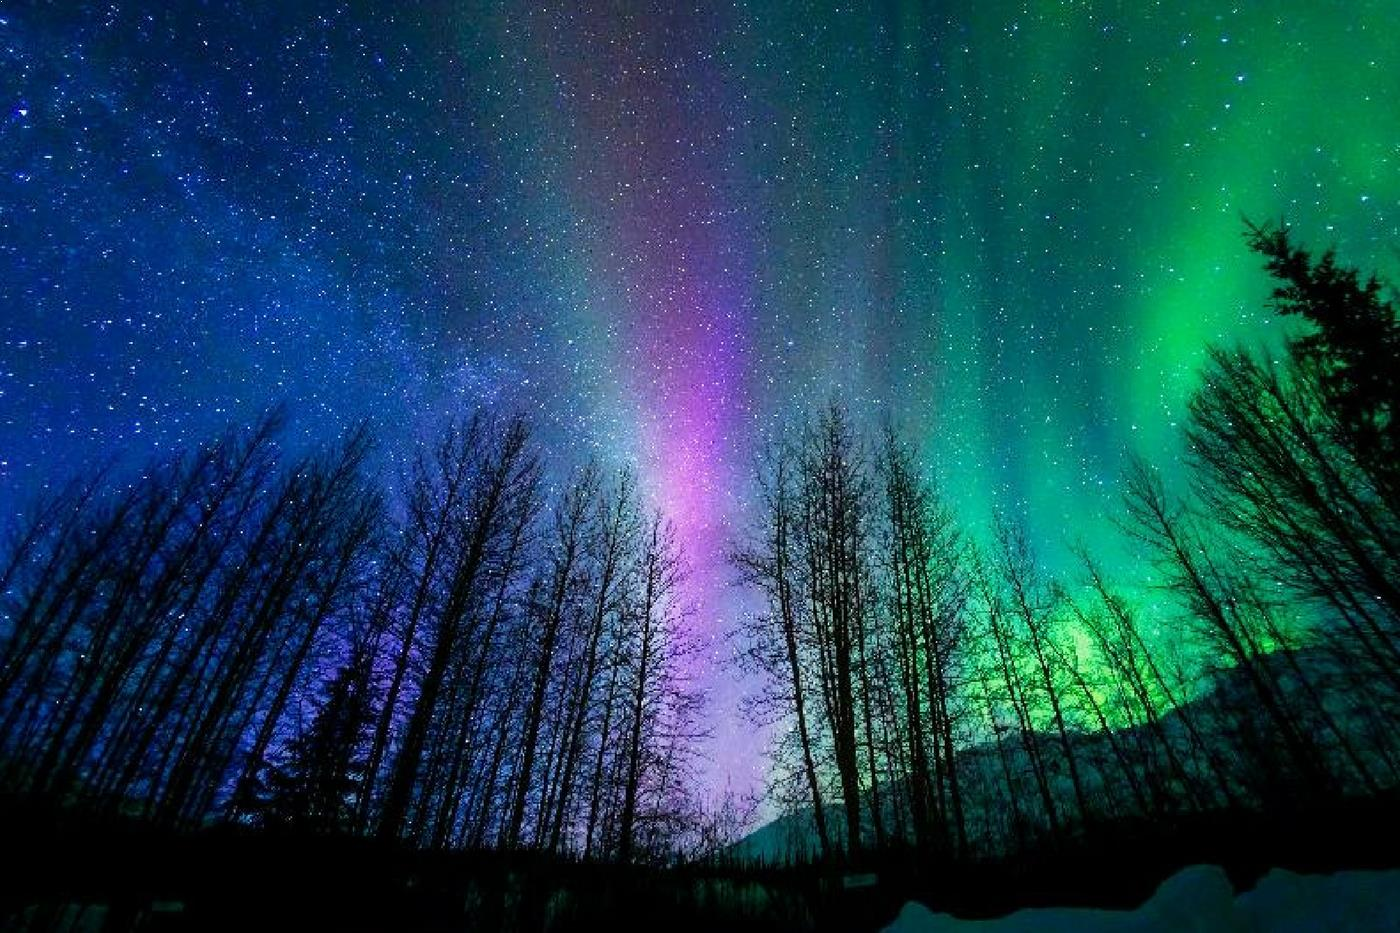 The Ethereal Beauty Of The Northern Lights Captured With Time Lapse  Photography